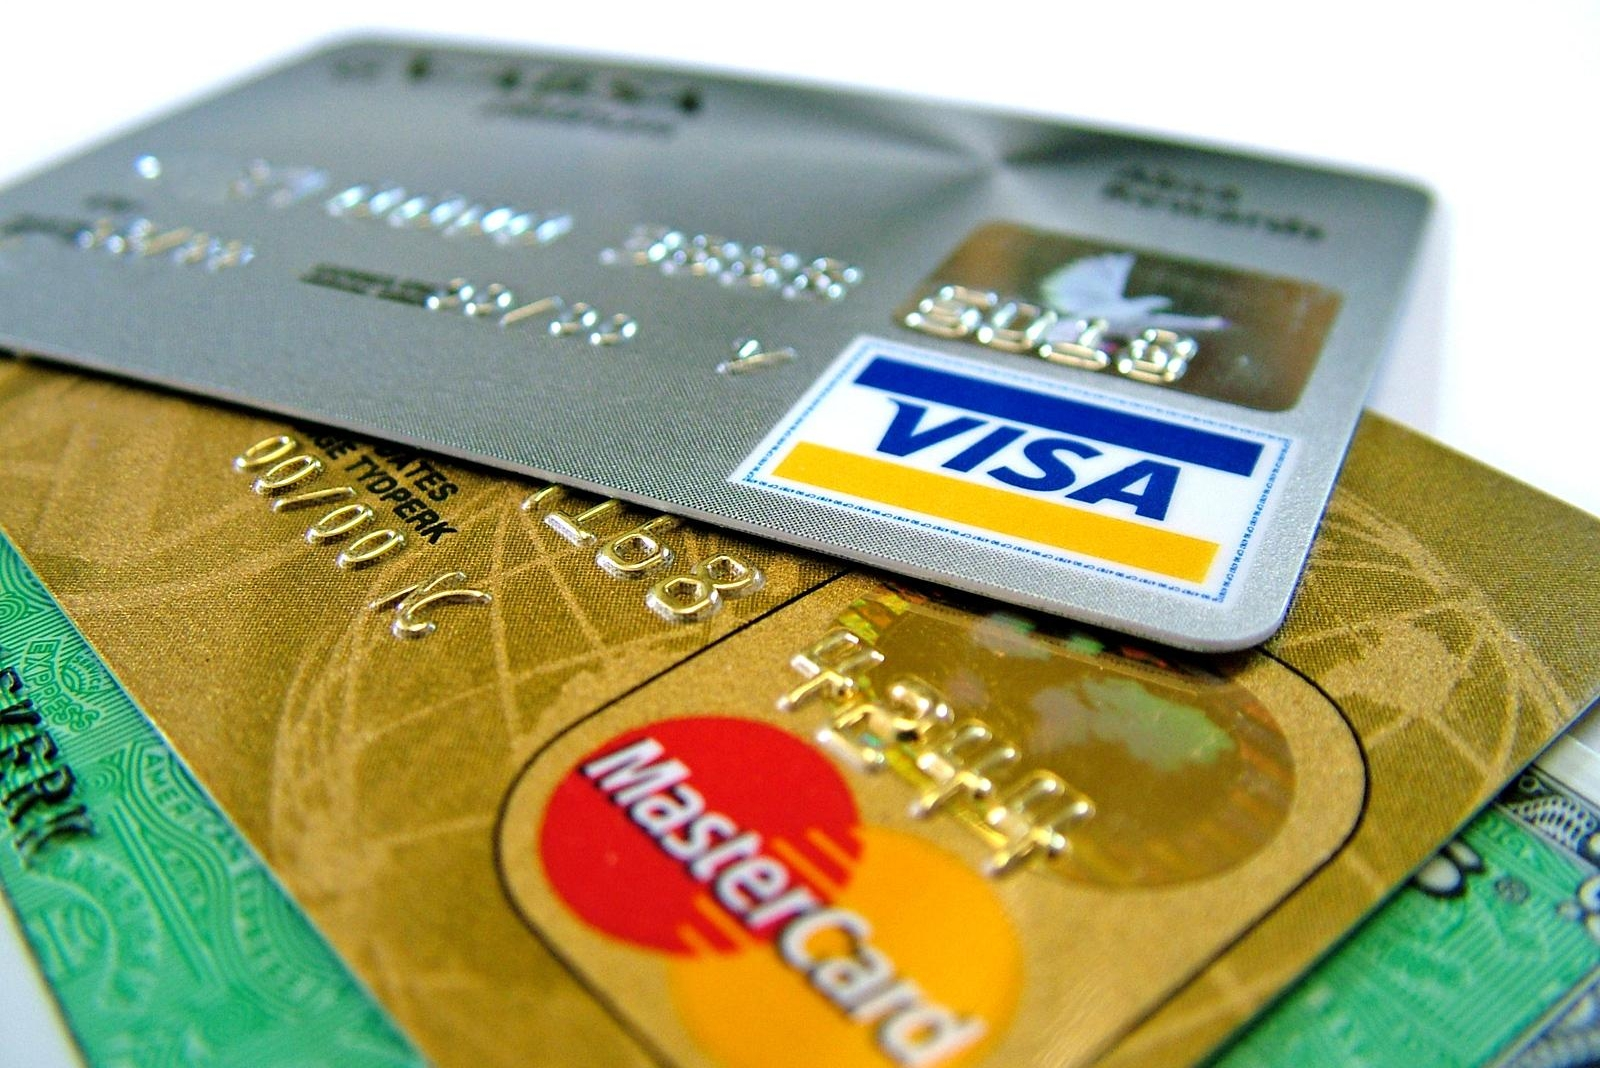 Credit Card Churning Rules and Manufacture Spend, What's Left?